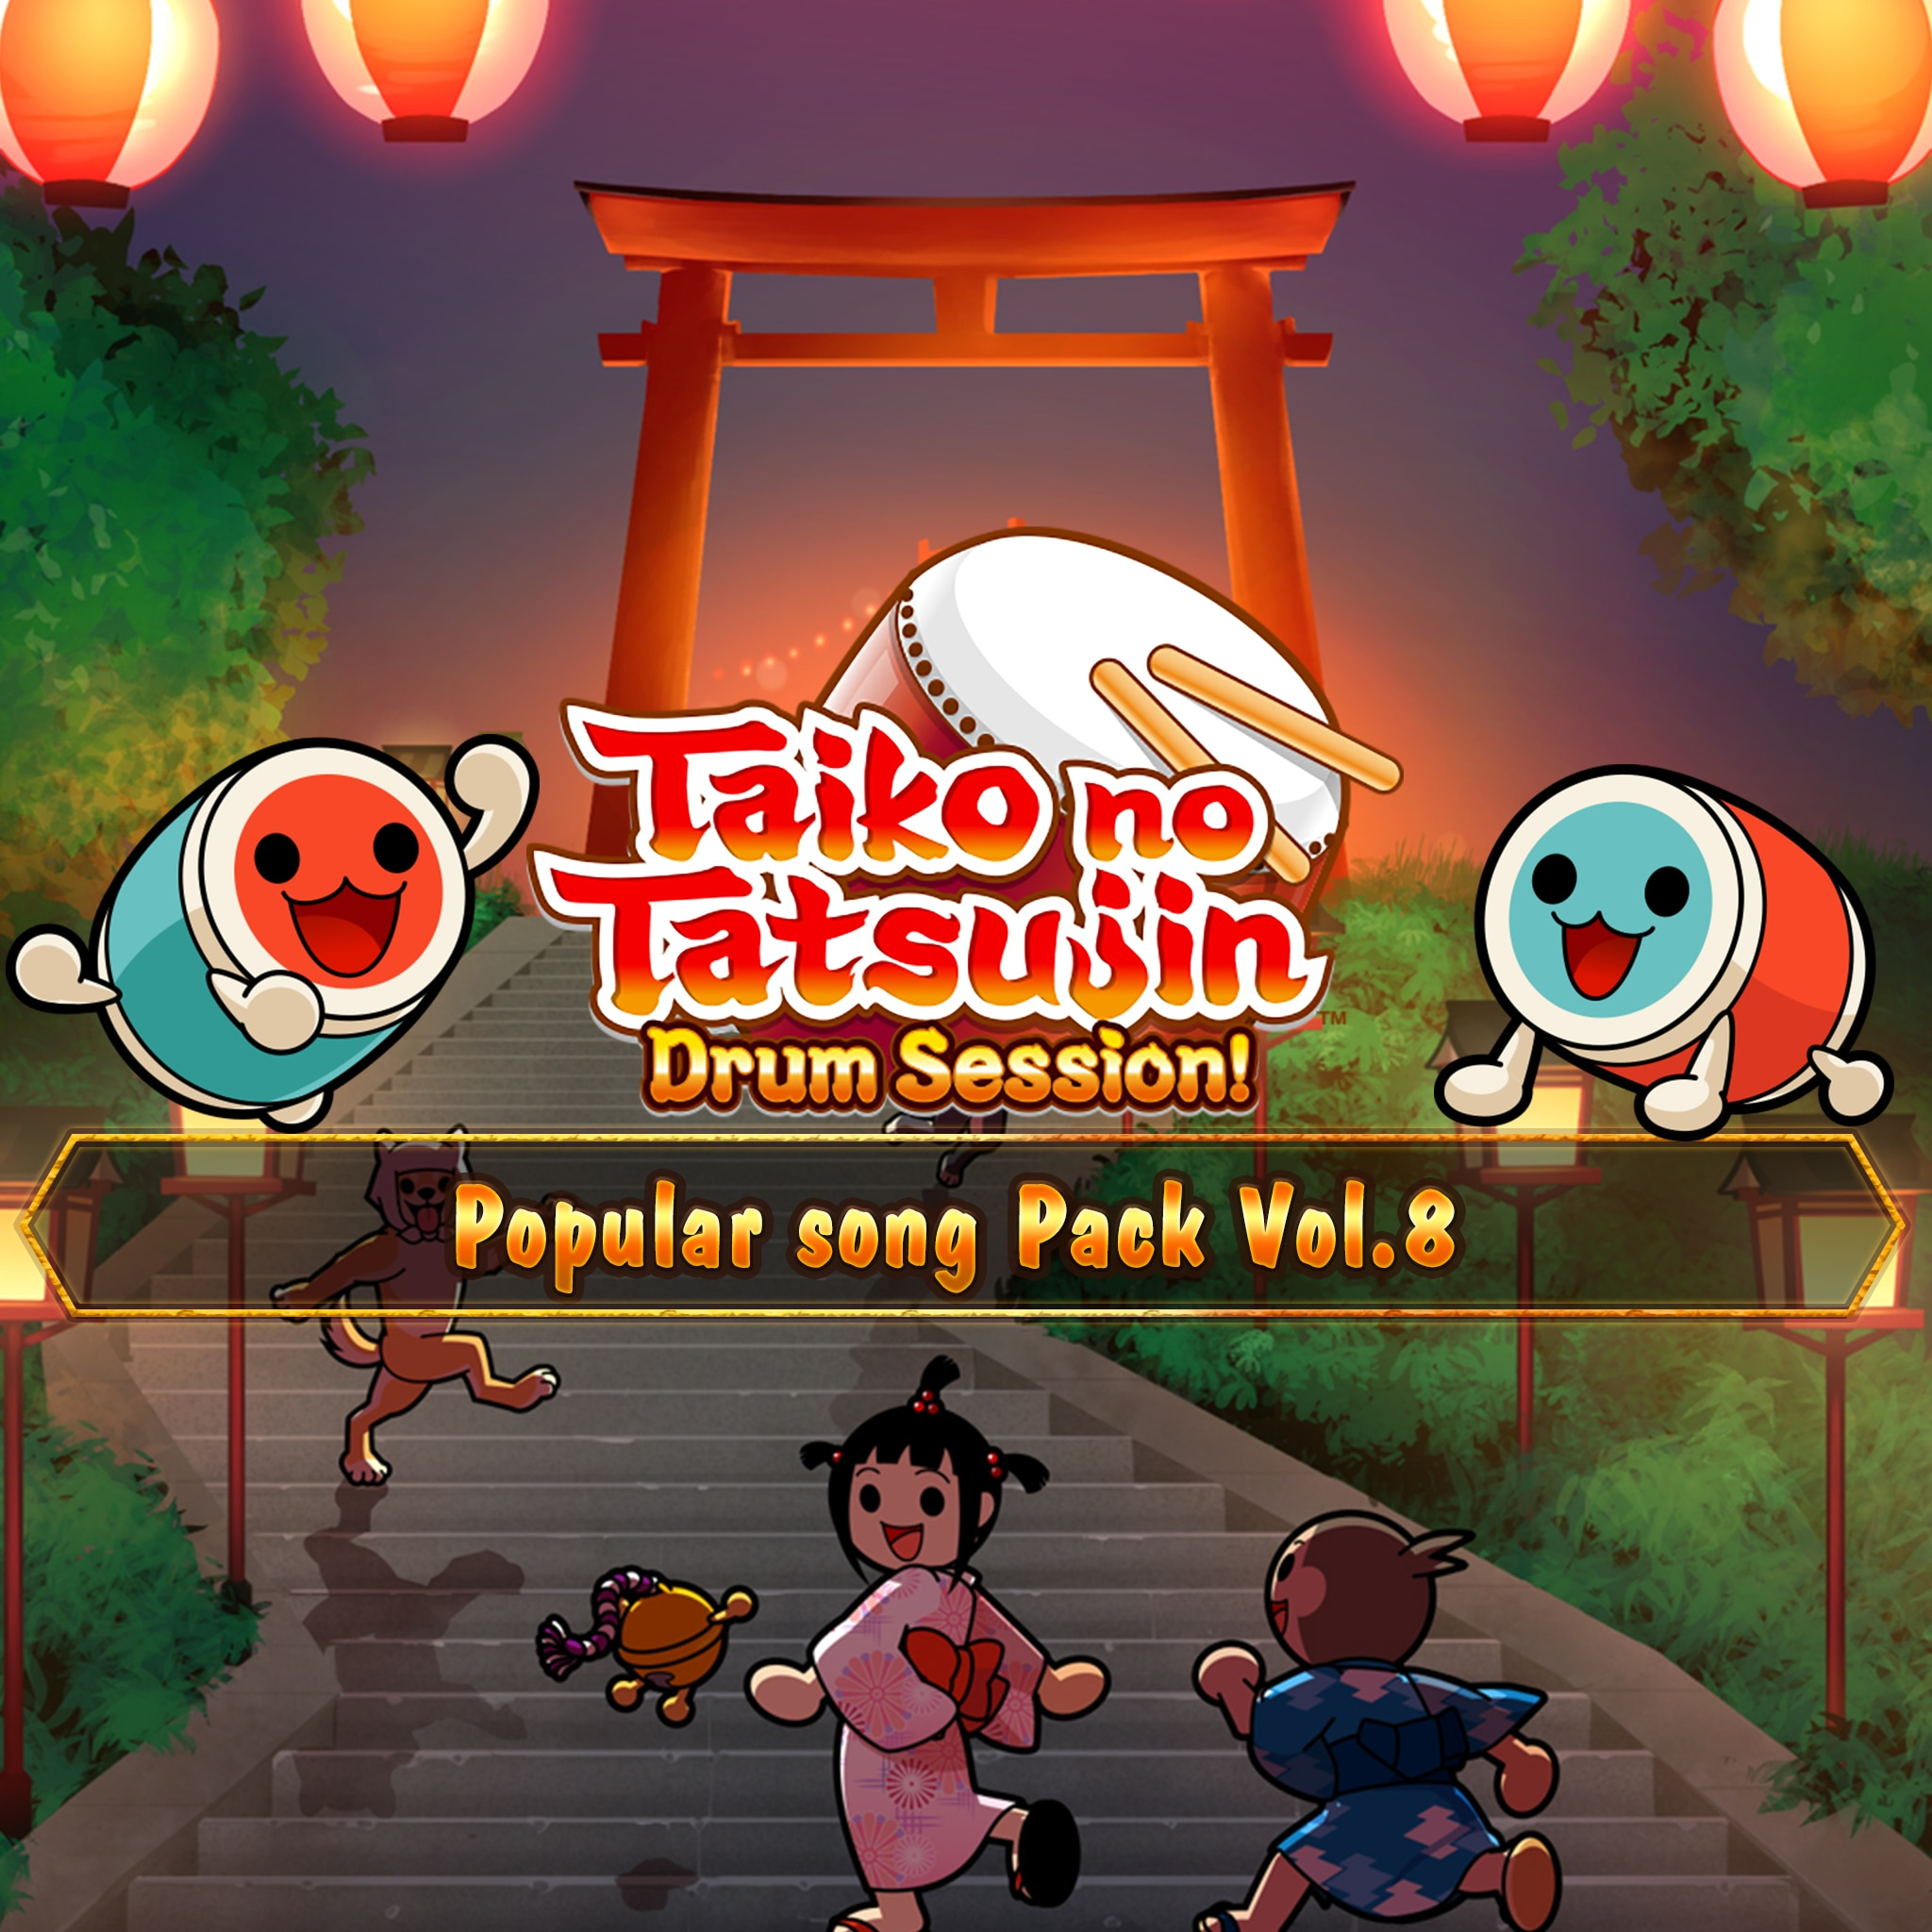 Taiko no Tatsujin - Popular Song Pack Vol.8